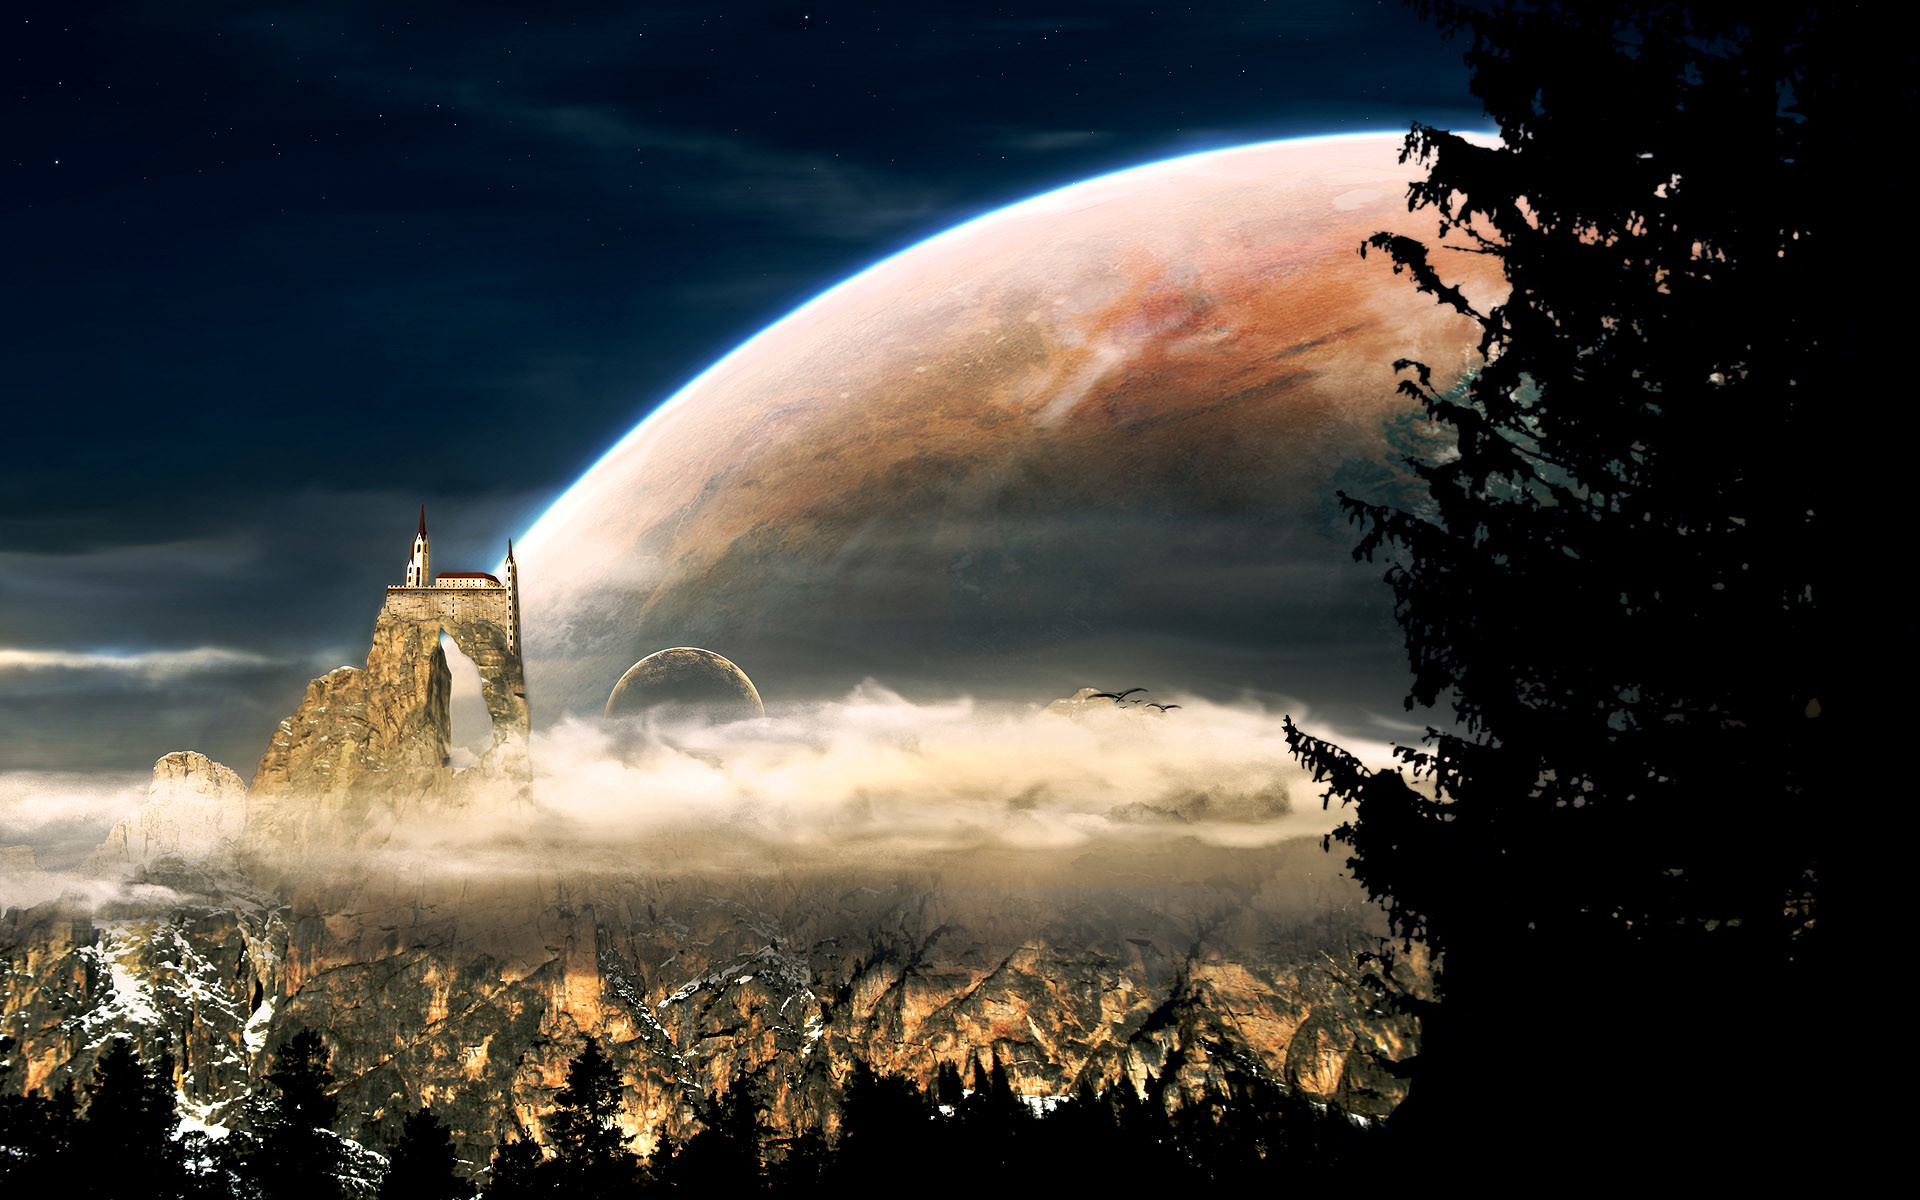 01 wallpaper-fantasy-planet-closest-incredibly-pictures-world-space